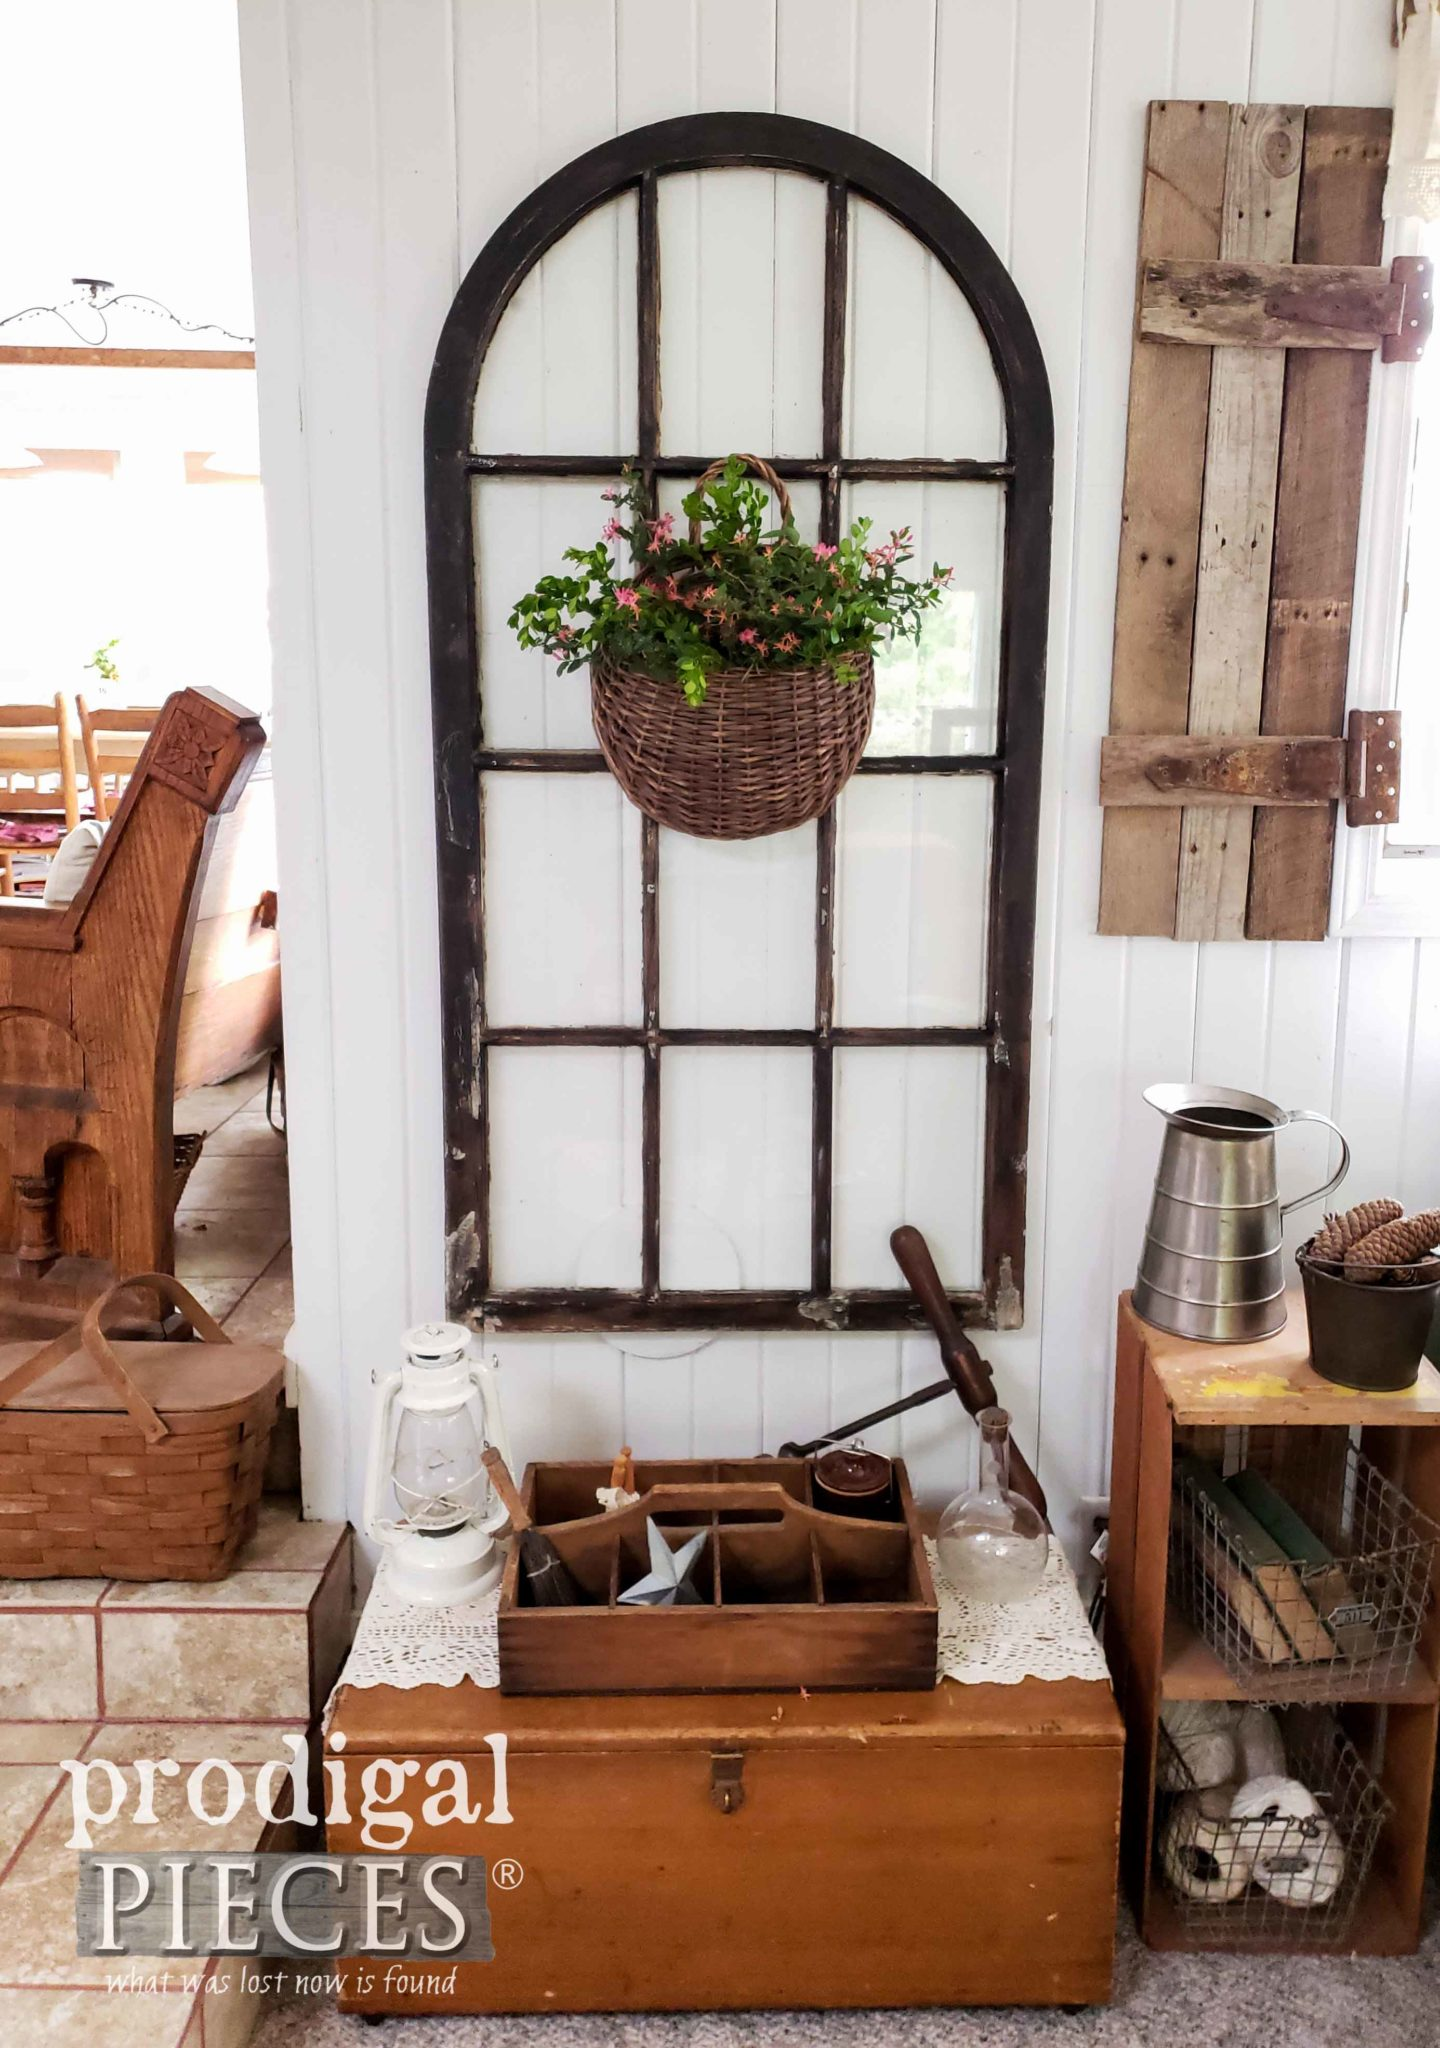 Savaged Arched Window for Farmhouse Decor by Larissa of Prodigal Pieces | prodigalpieces.com